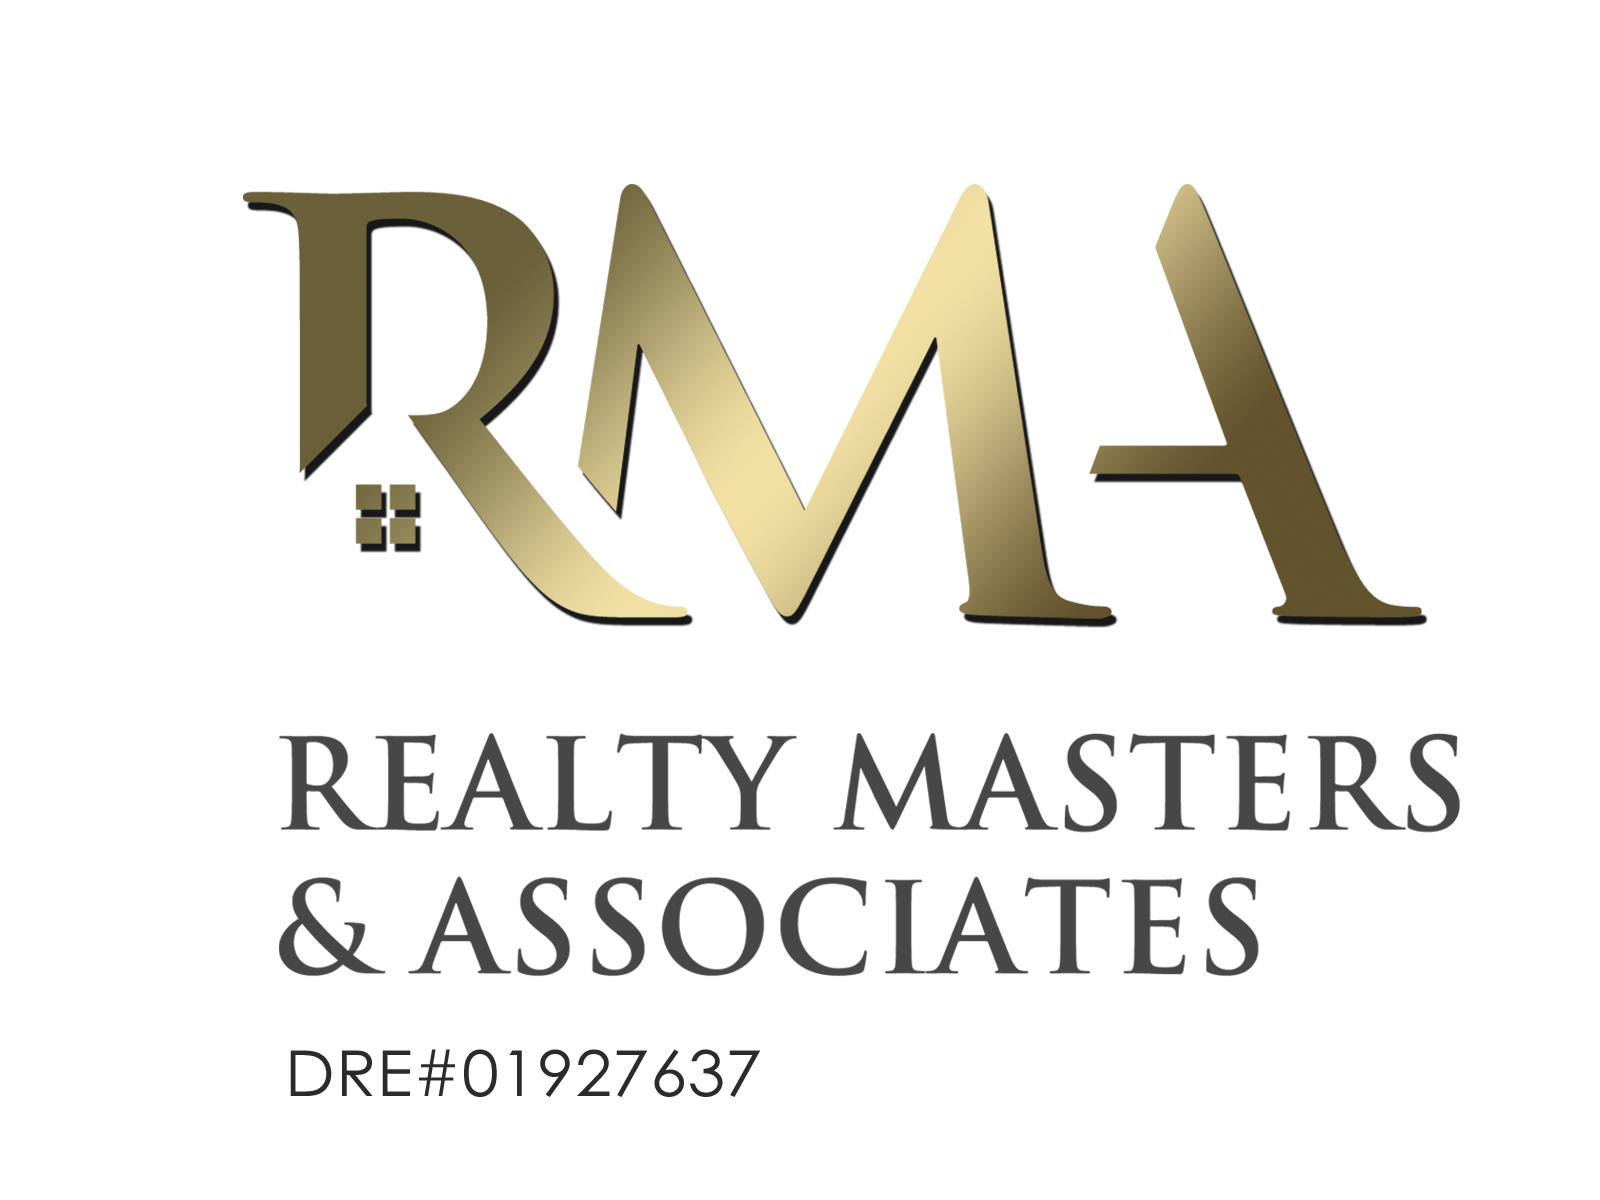 Realty Masters & Associates